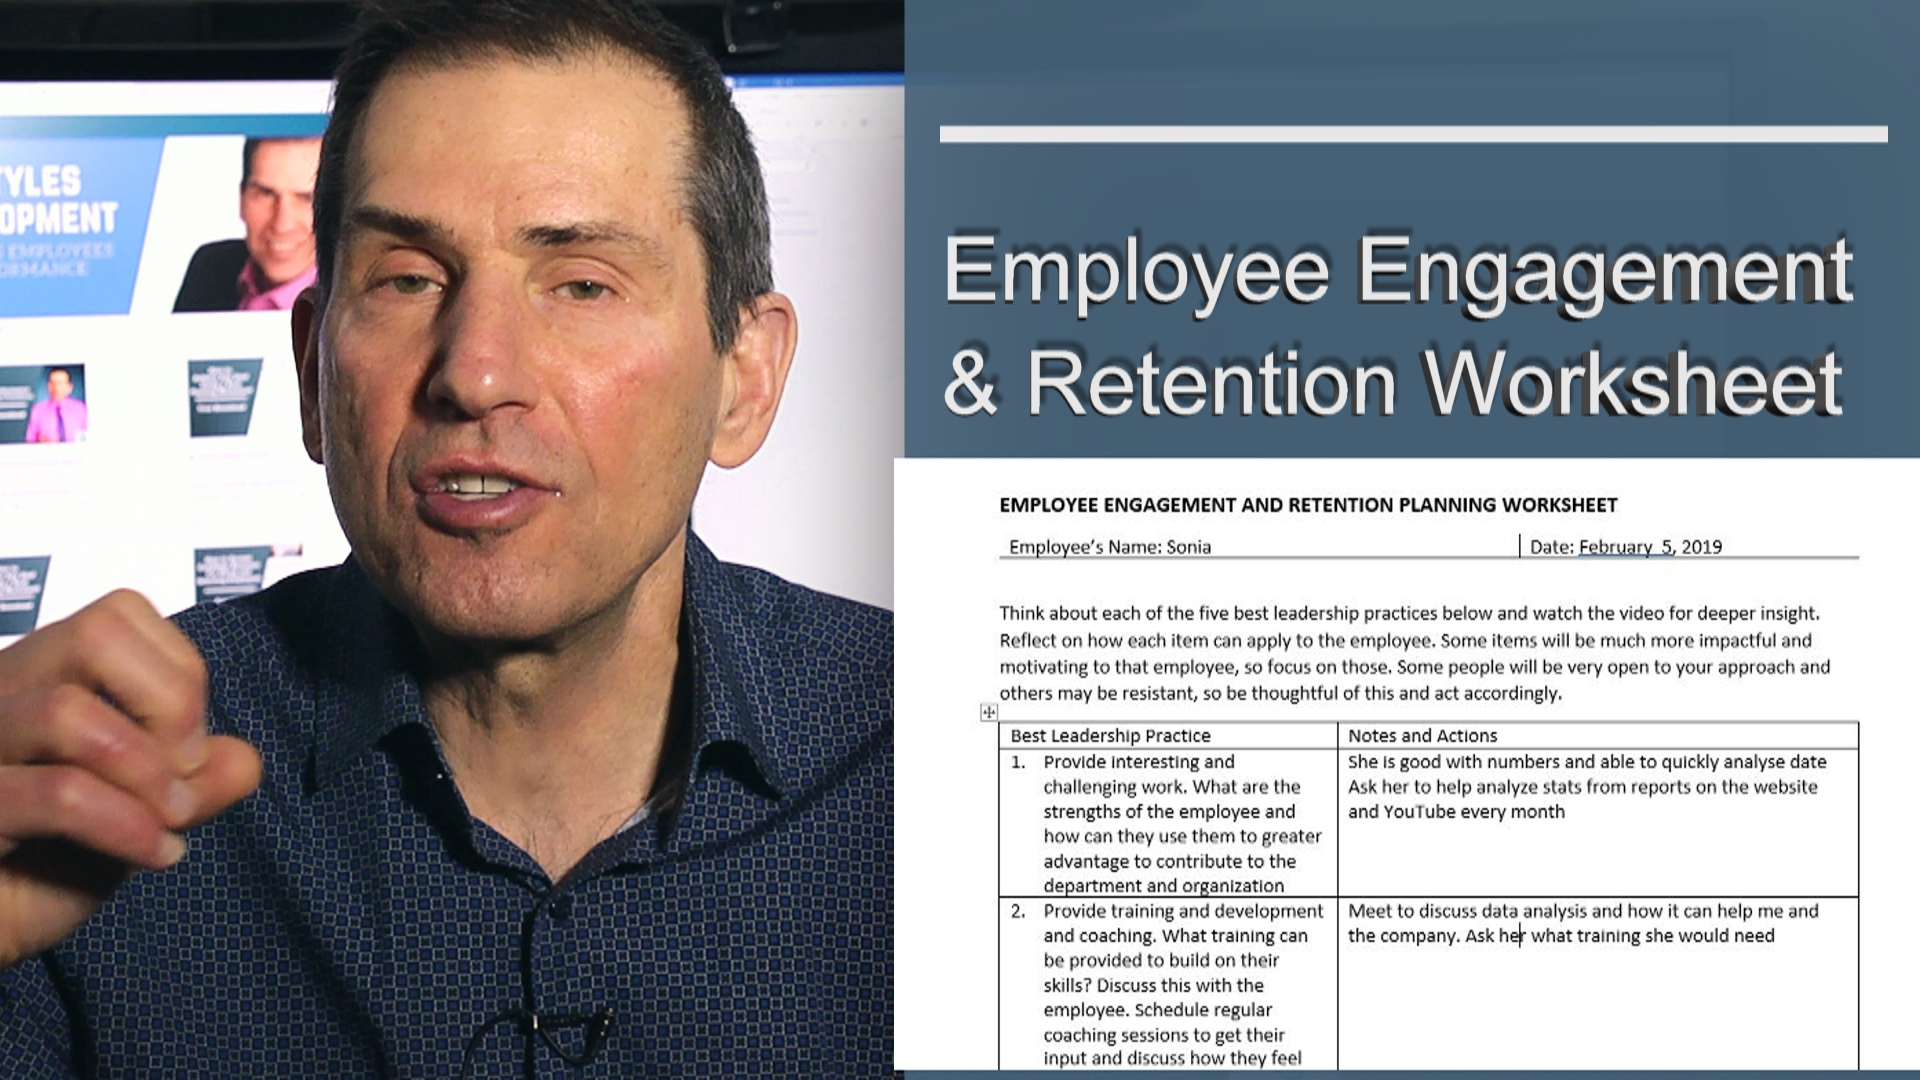 Employee Engagement And Retention Planning Worksheet